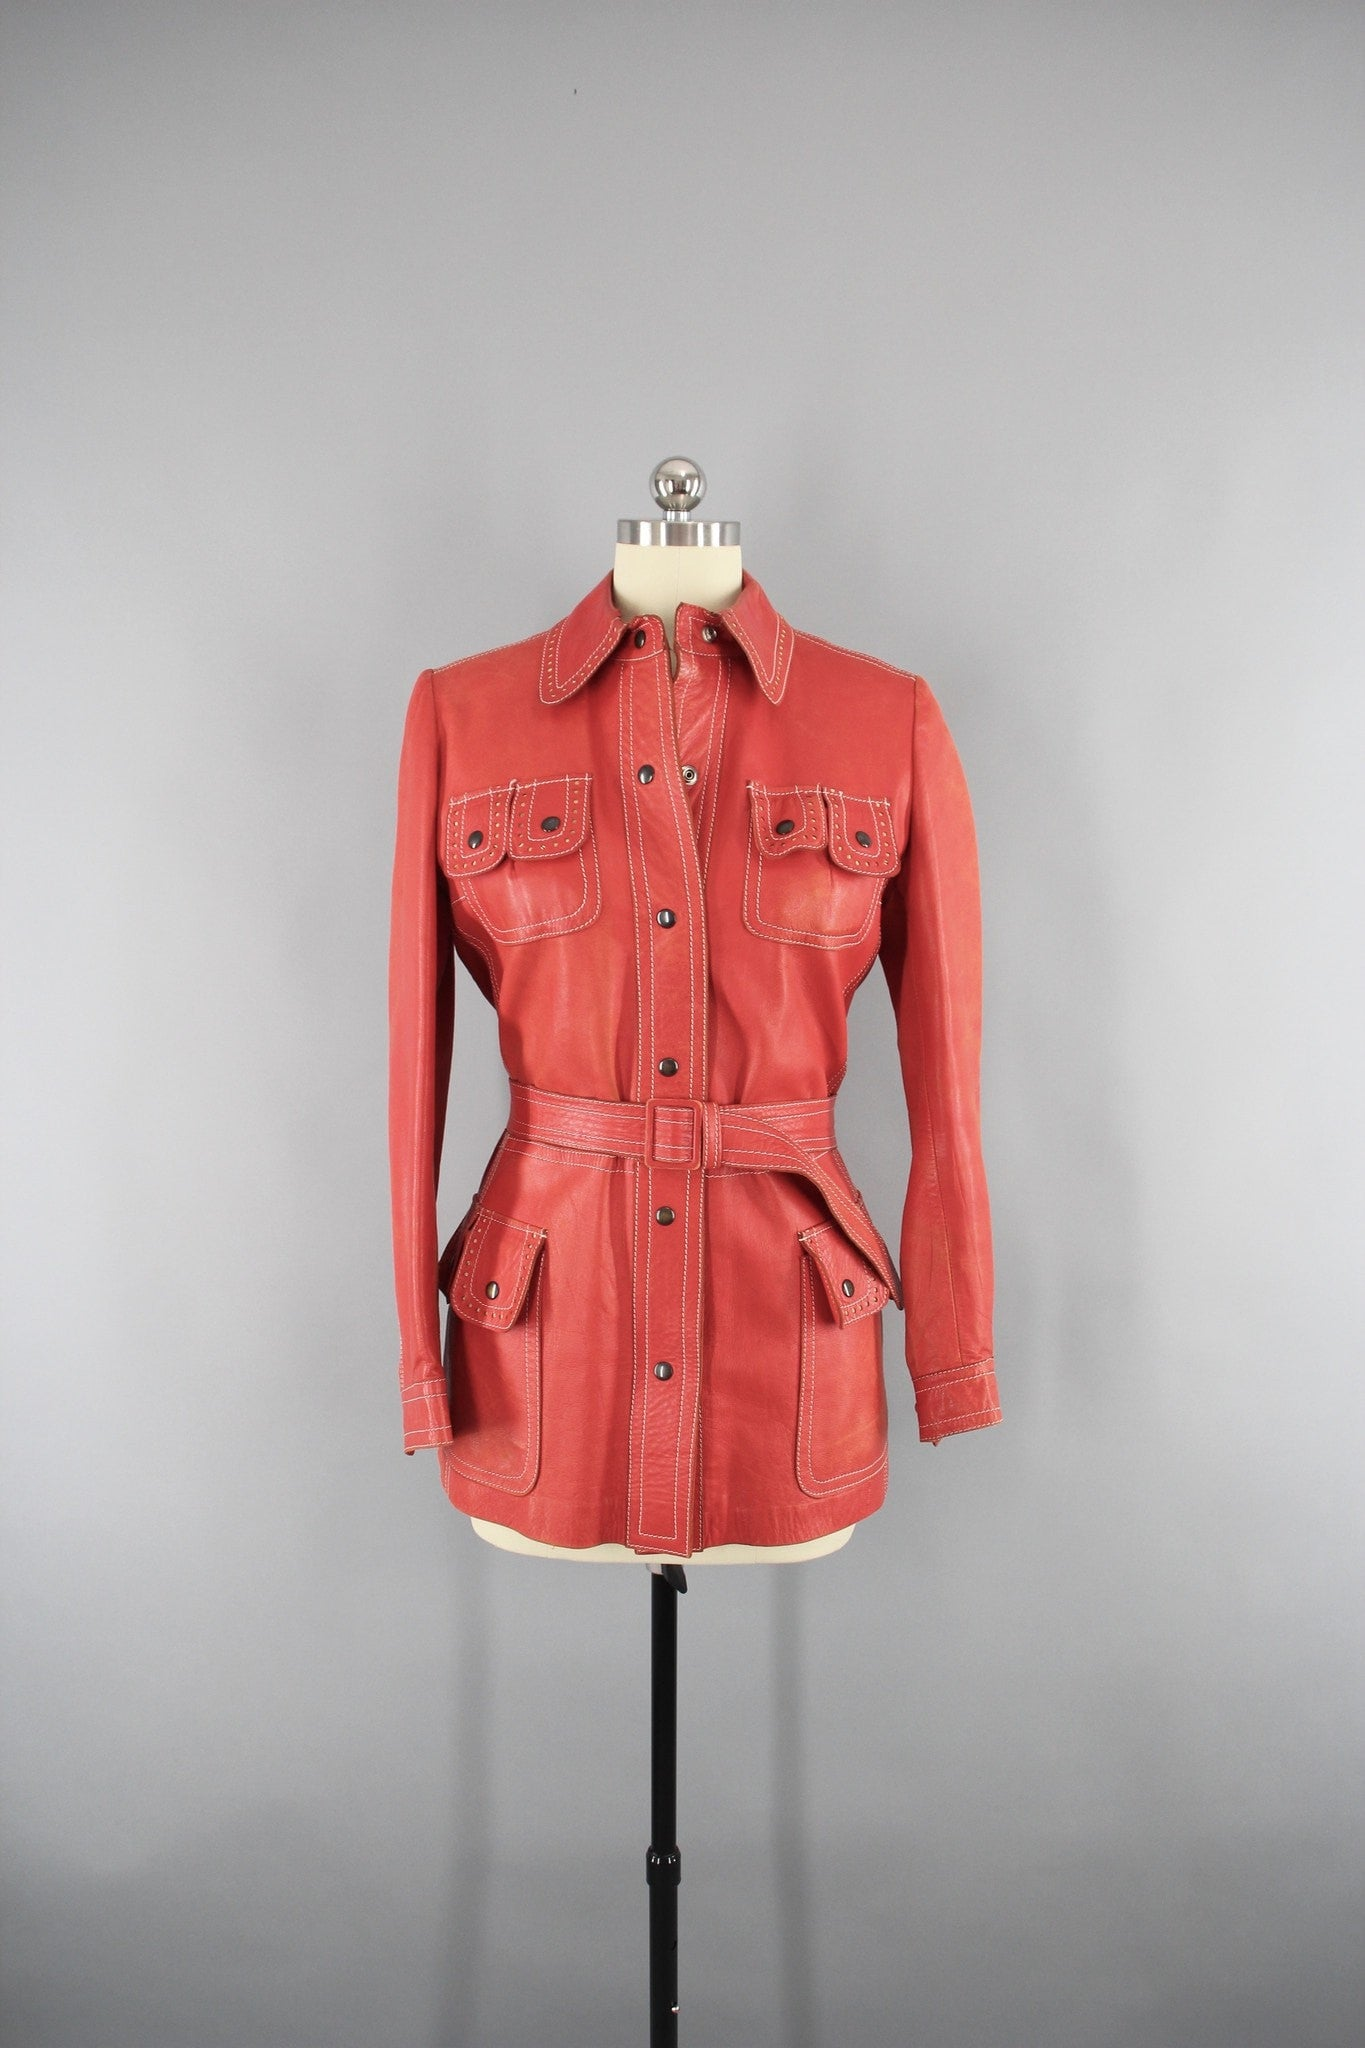 Vintage 1960s Red Orange Leather Jacket Outerwear ThisBlueBird